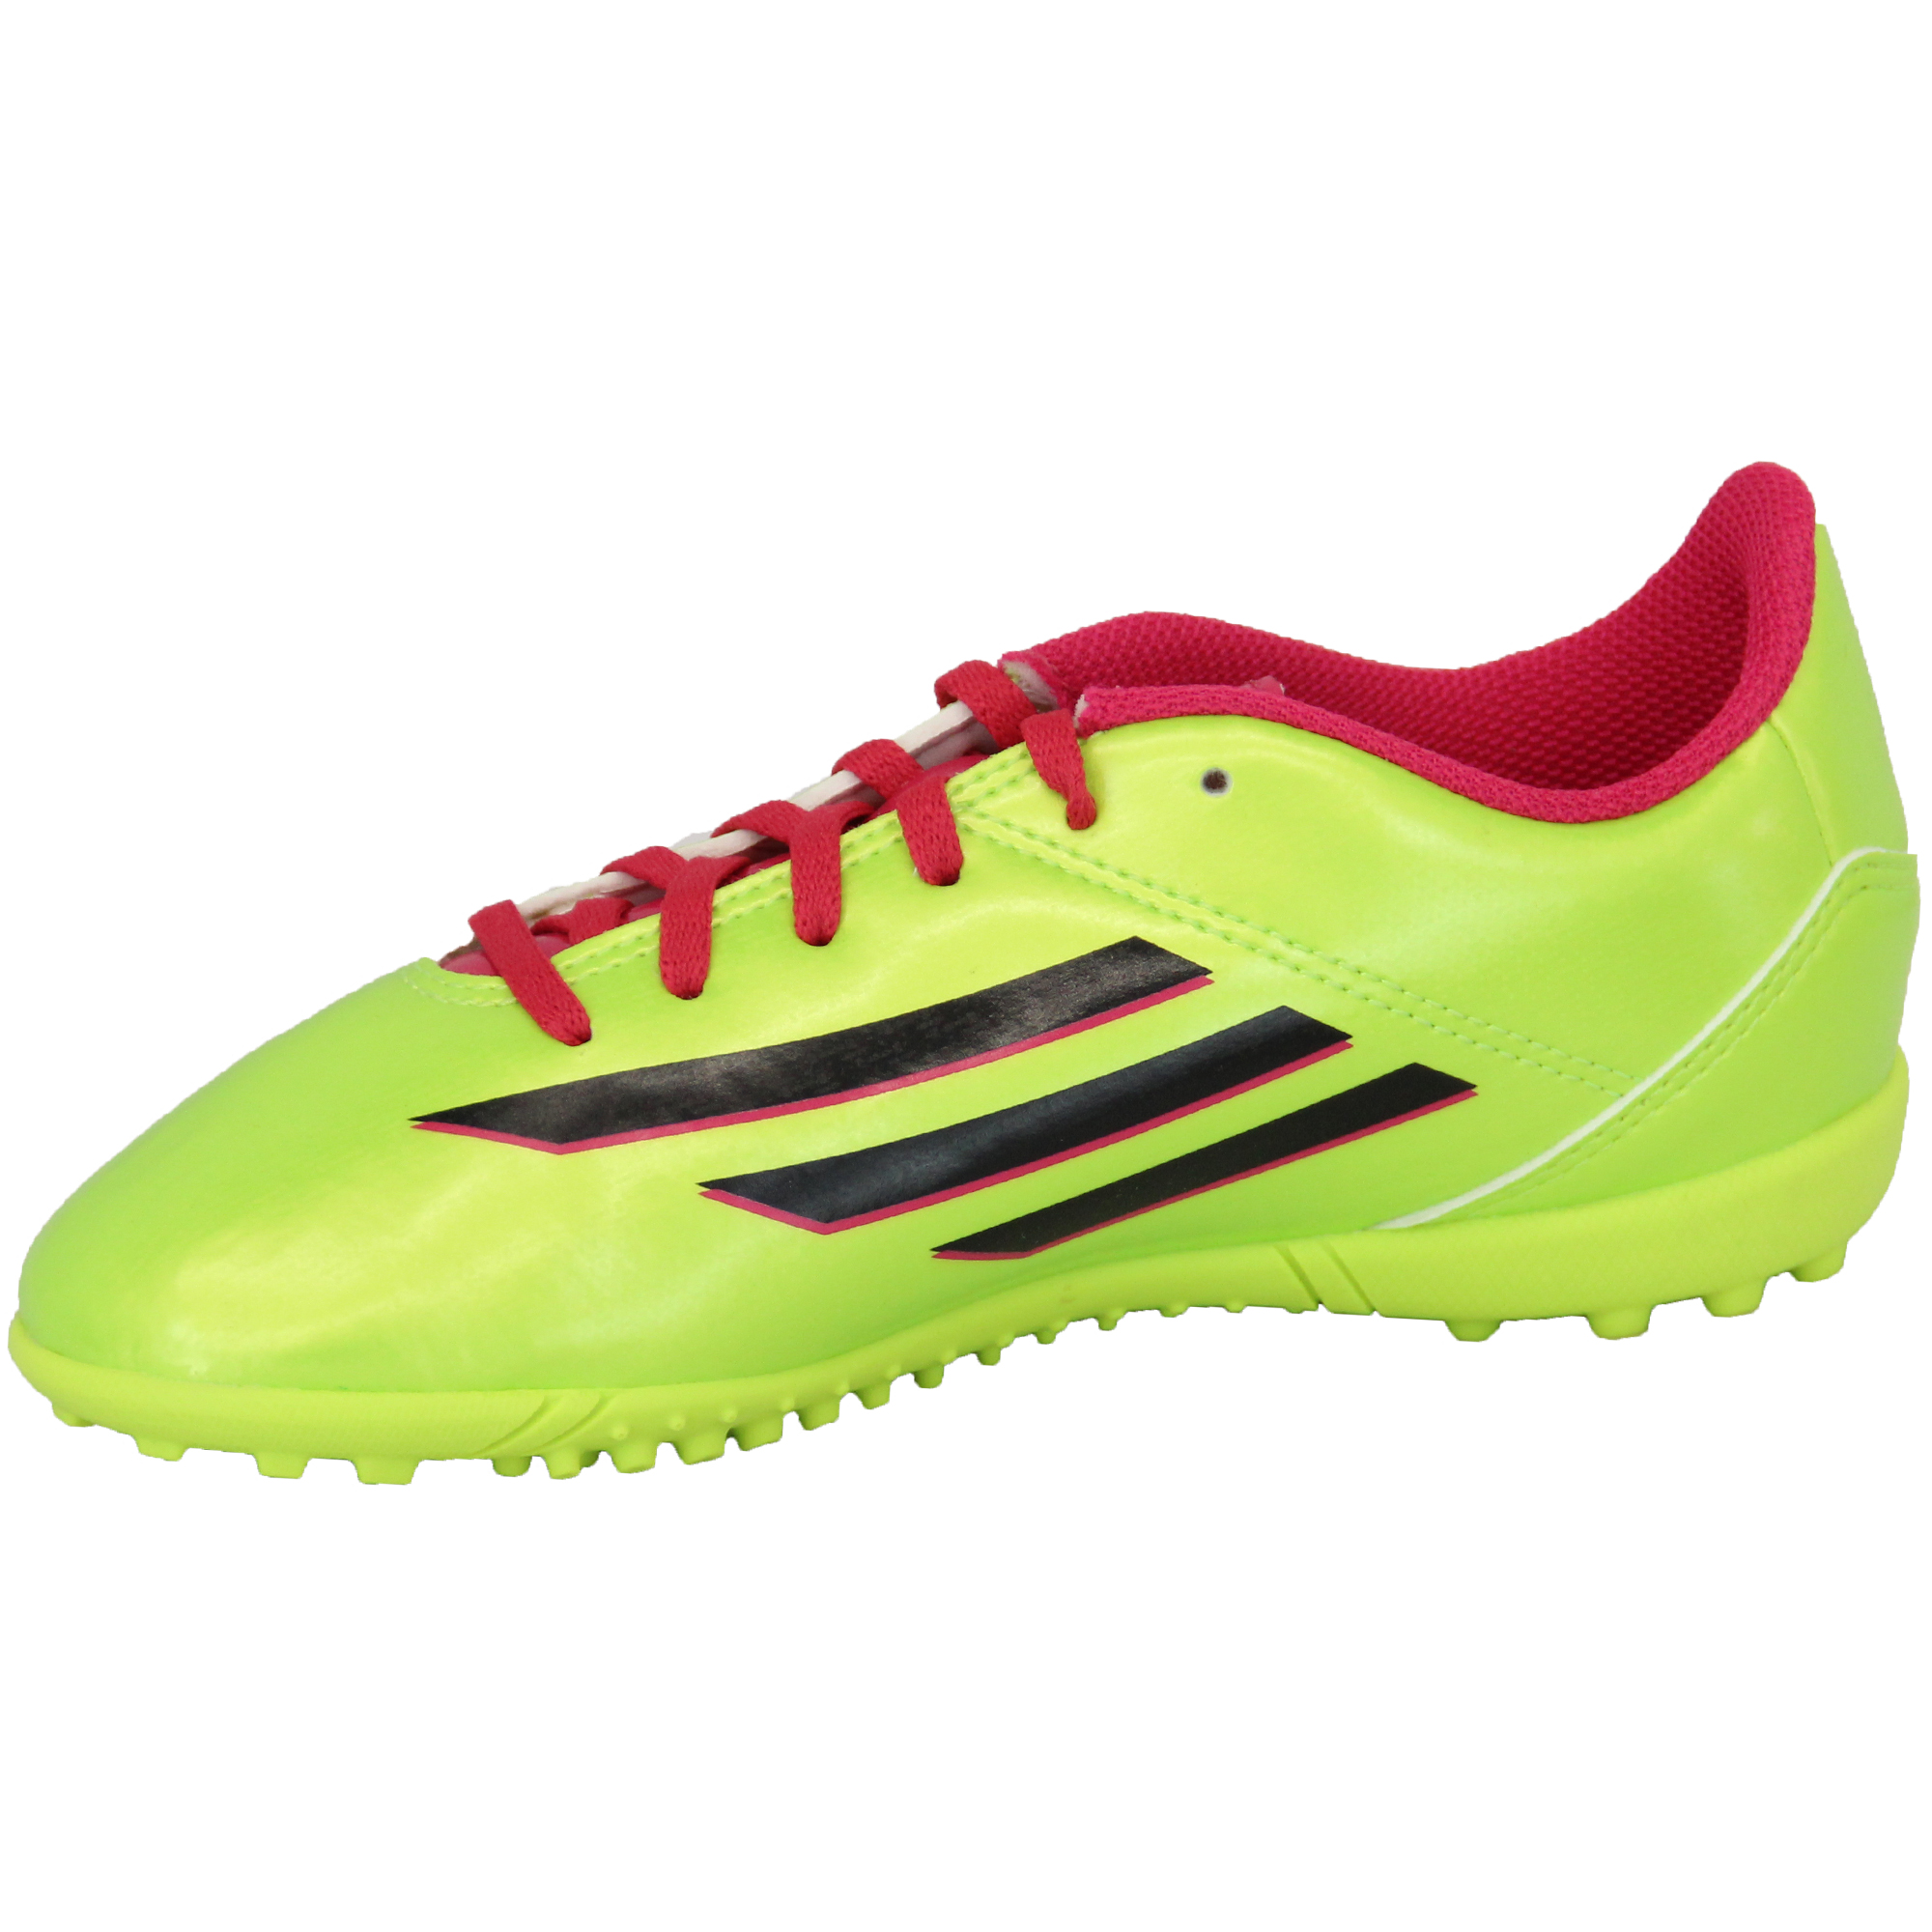 Boys-ADIDAS-Trainers-Kids-Football-Soccer-Astro-Turf-Shoes-Lace-Up-Neon-Youth thumbnail 13